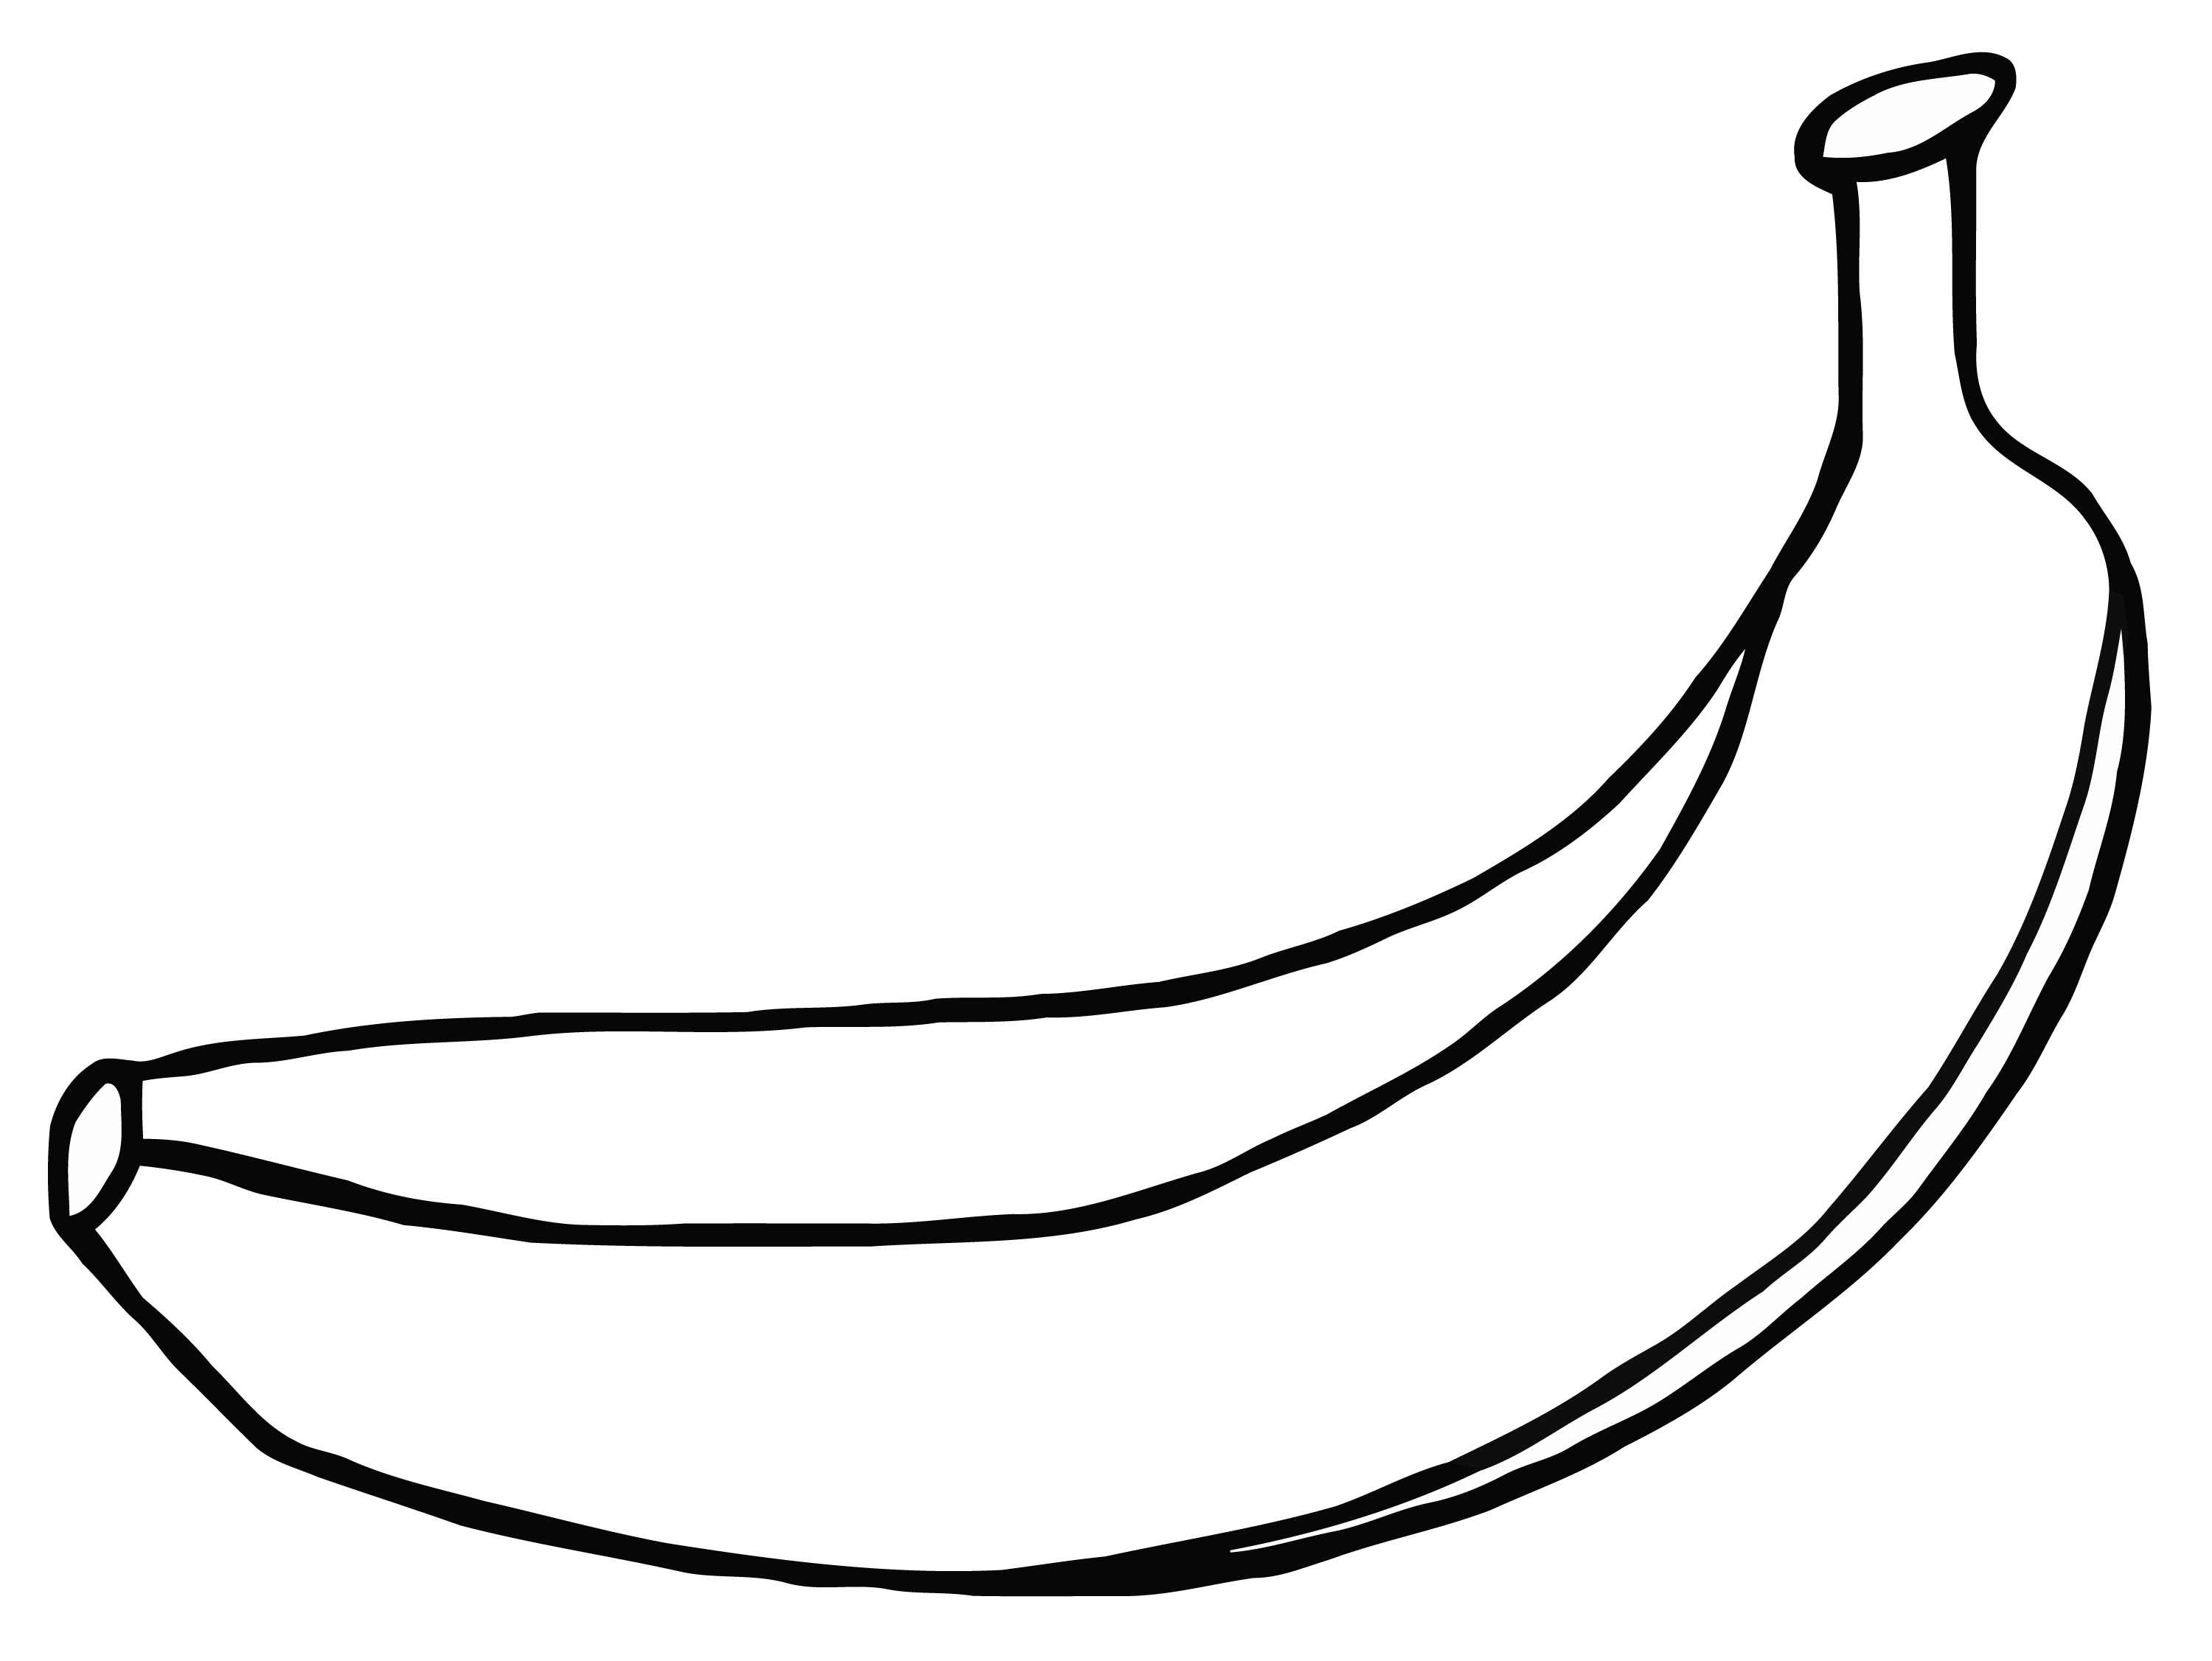 Banana black and white. Free download best